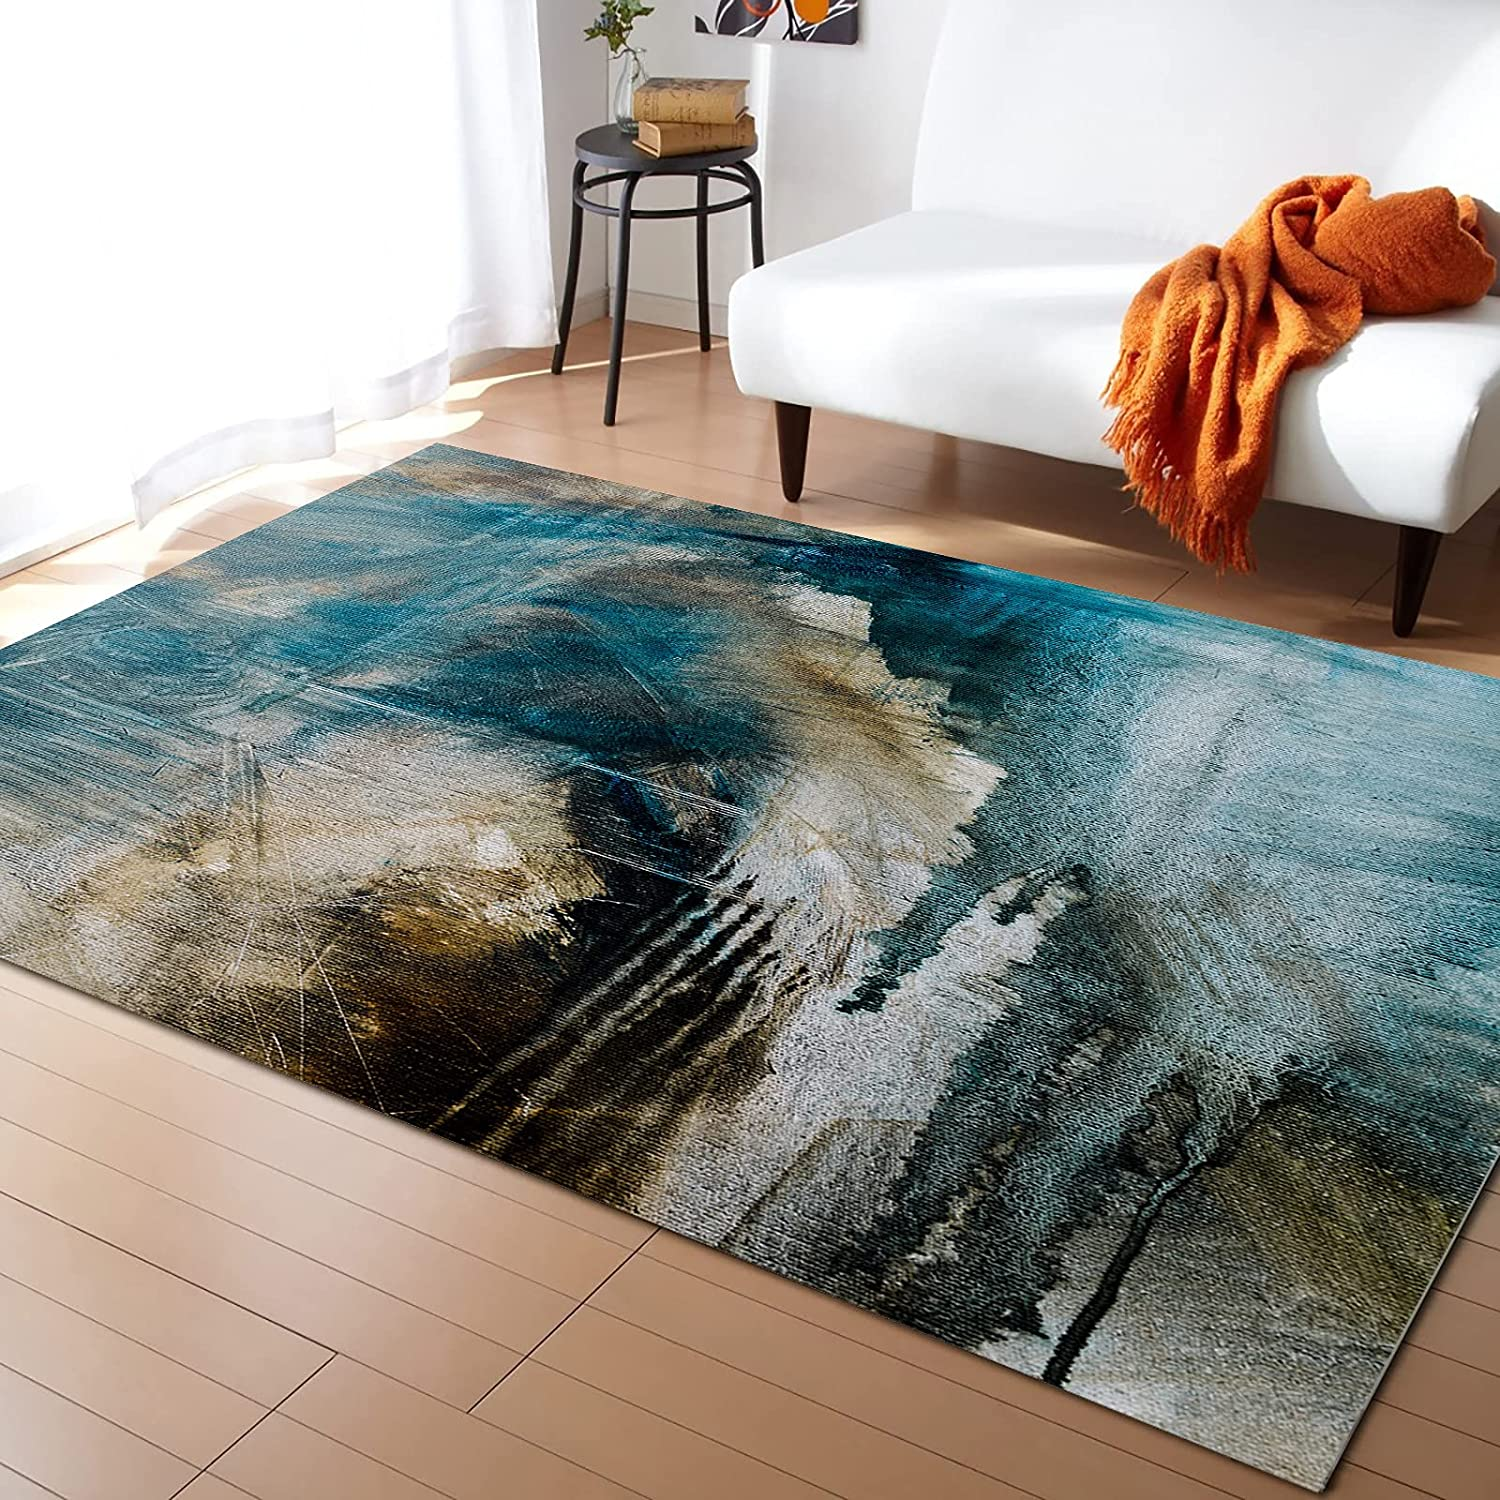 COLORSUM Area Rug Max 77% OFF Challenge the lowest price Non-Slip Indoor Soft Painting Abstract Art Col